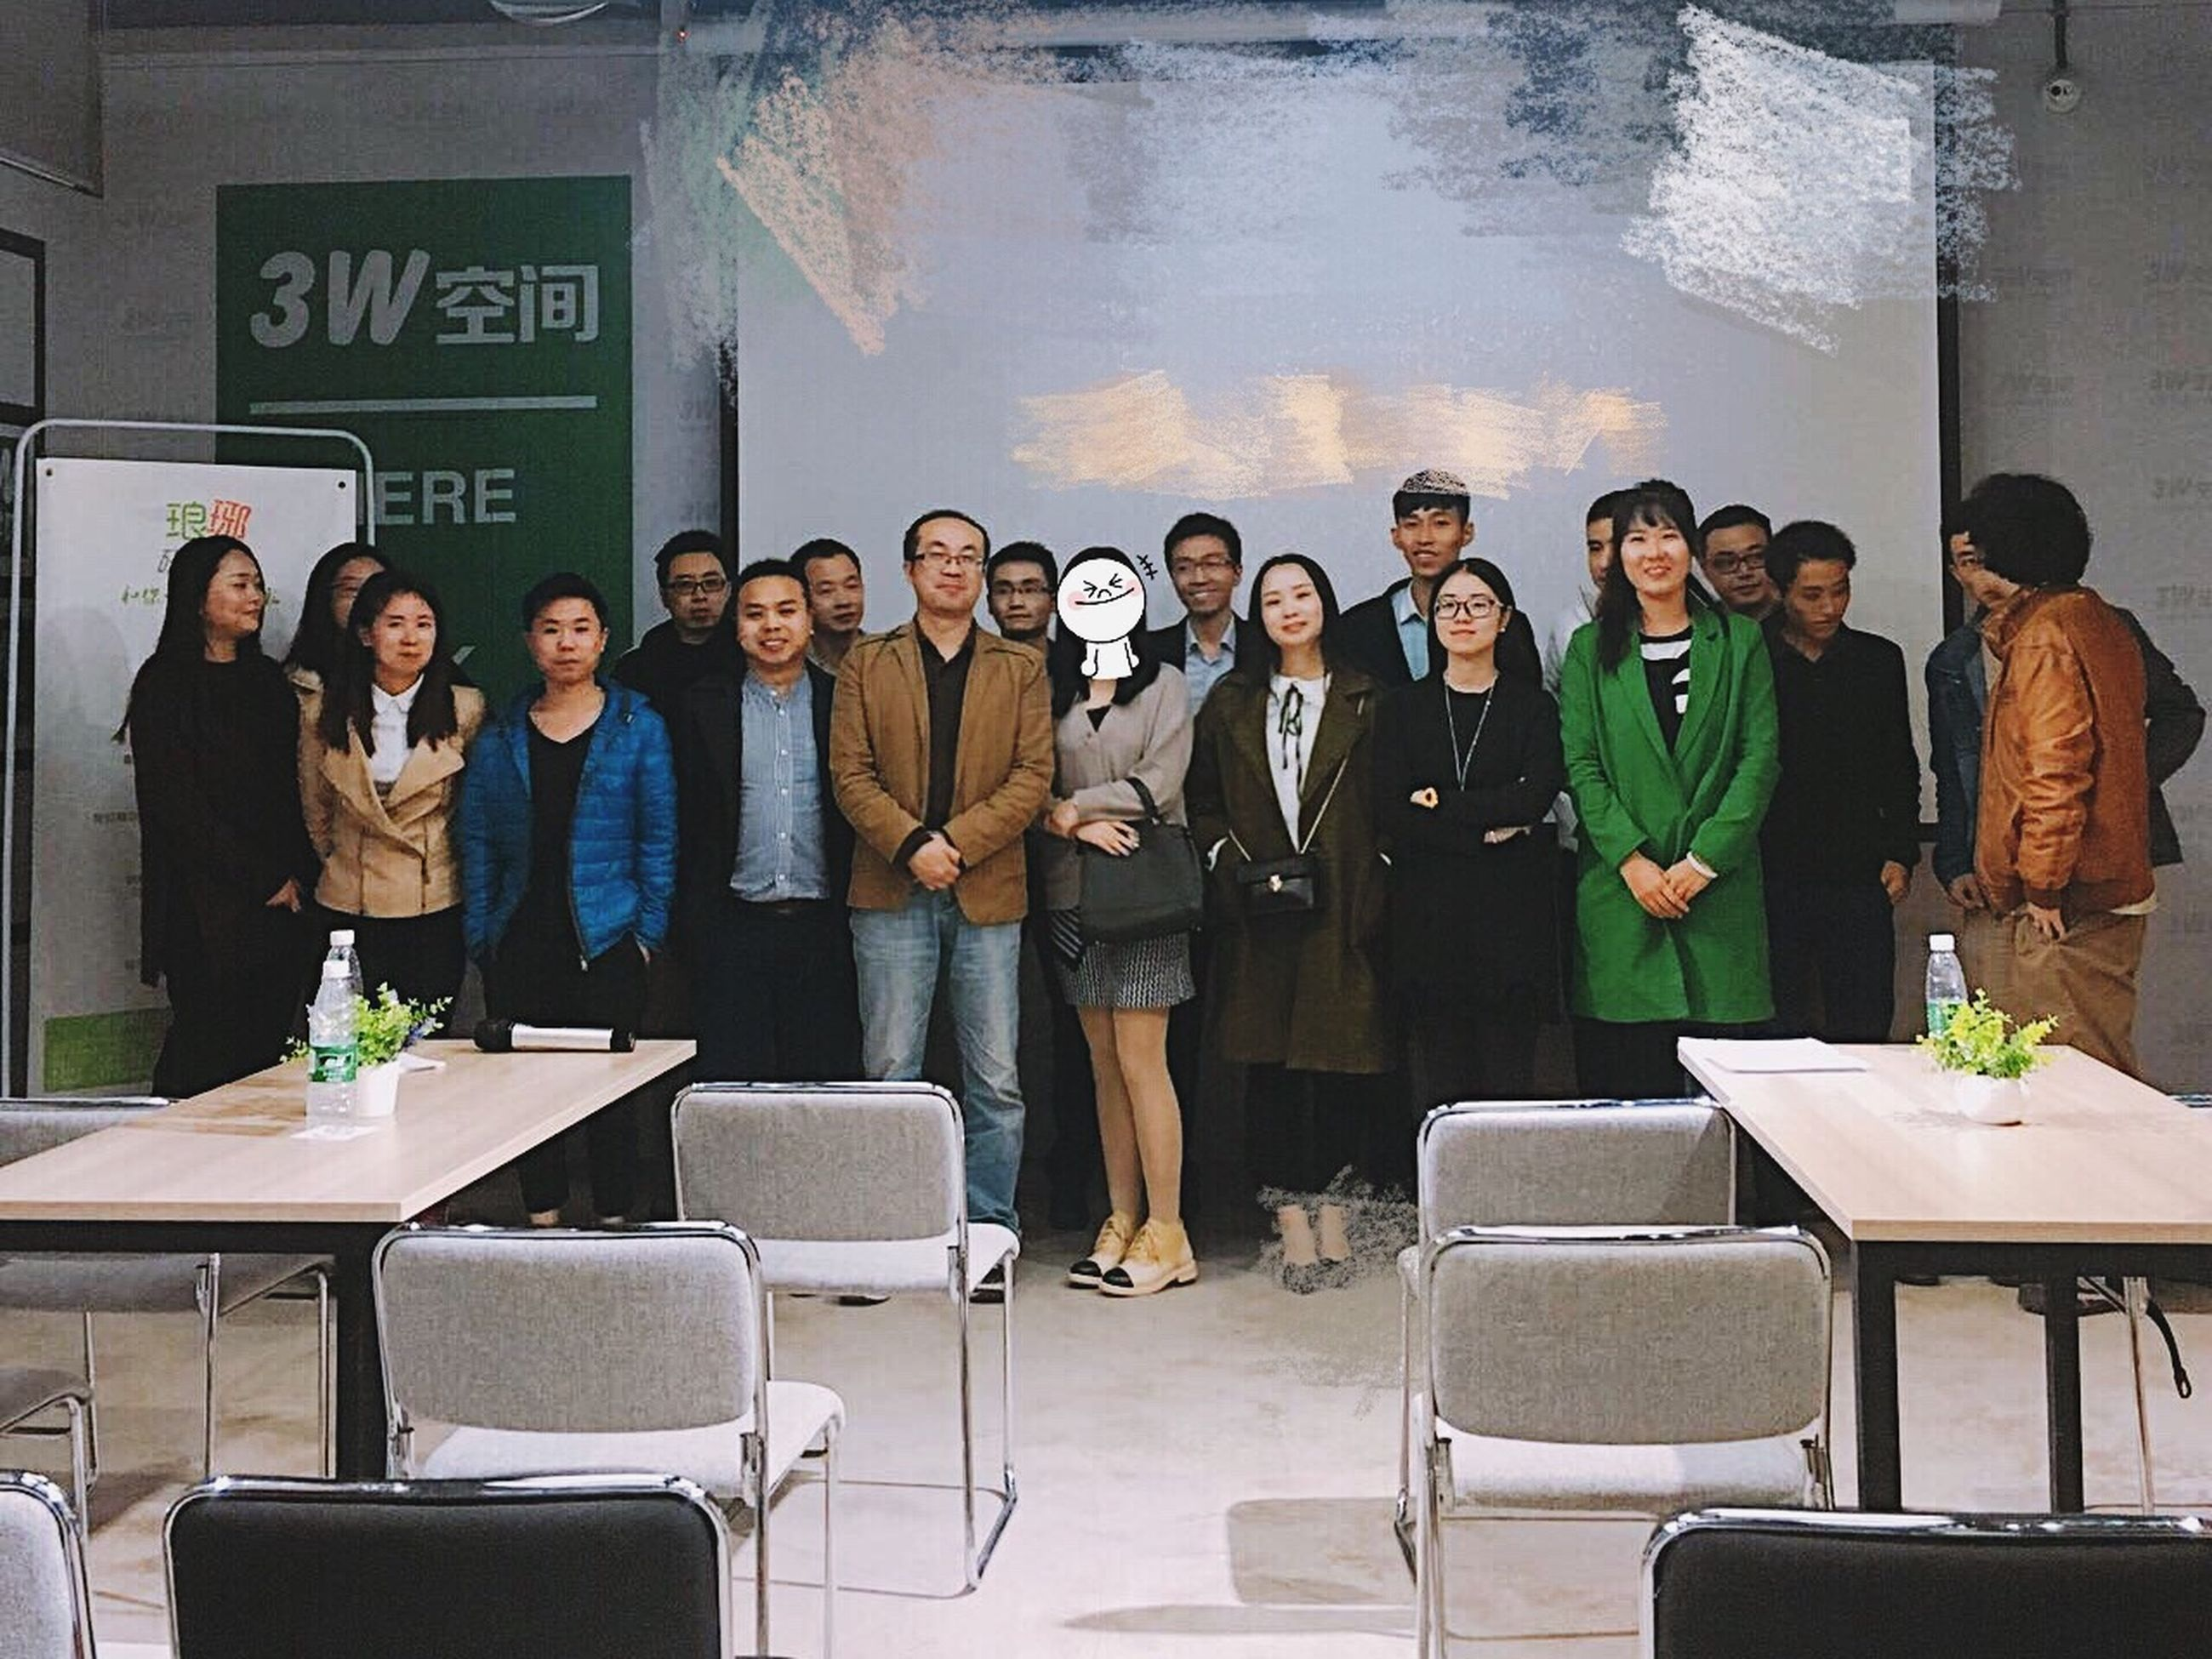 mid adult, mid adult women, business, mid adult men, businessman, business meeting, young women, large group of people, well-dressed, front view, mature adult, standing, colleague, indoors, men, mature women, adult, adults only, businesswoman, presentation, young adult, women, people, coworker, teamwork, conference - event, day, formula